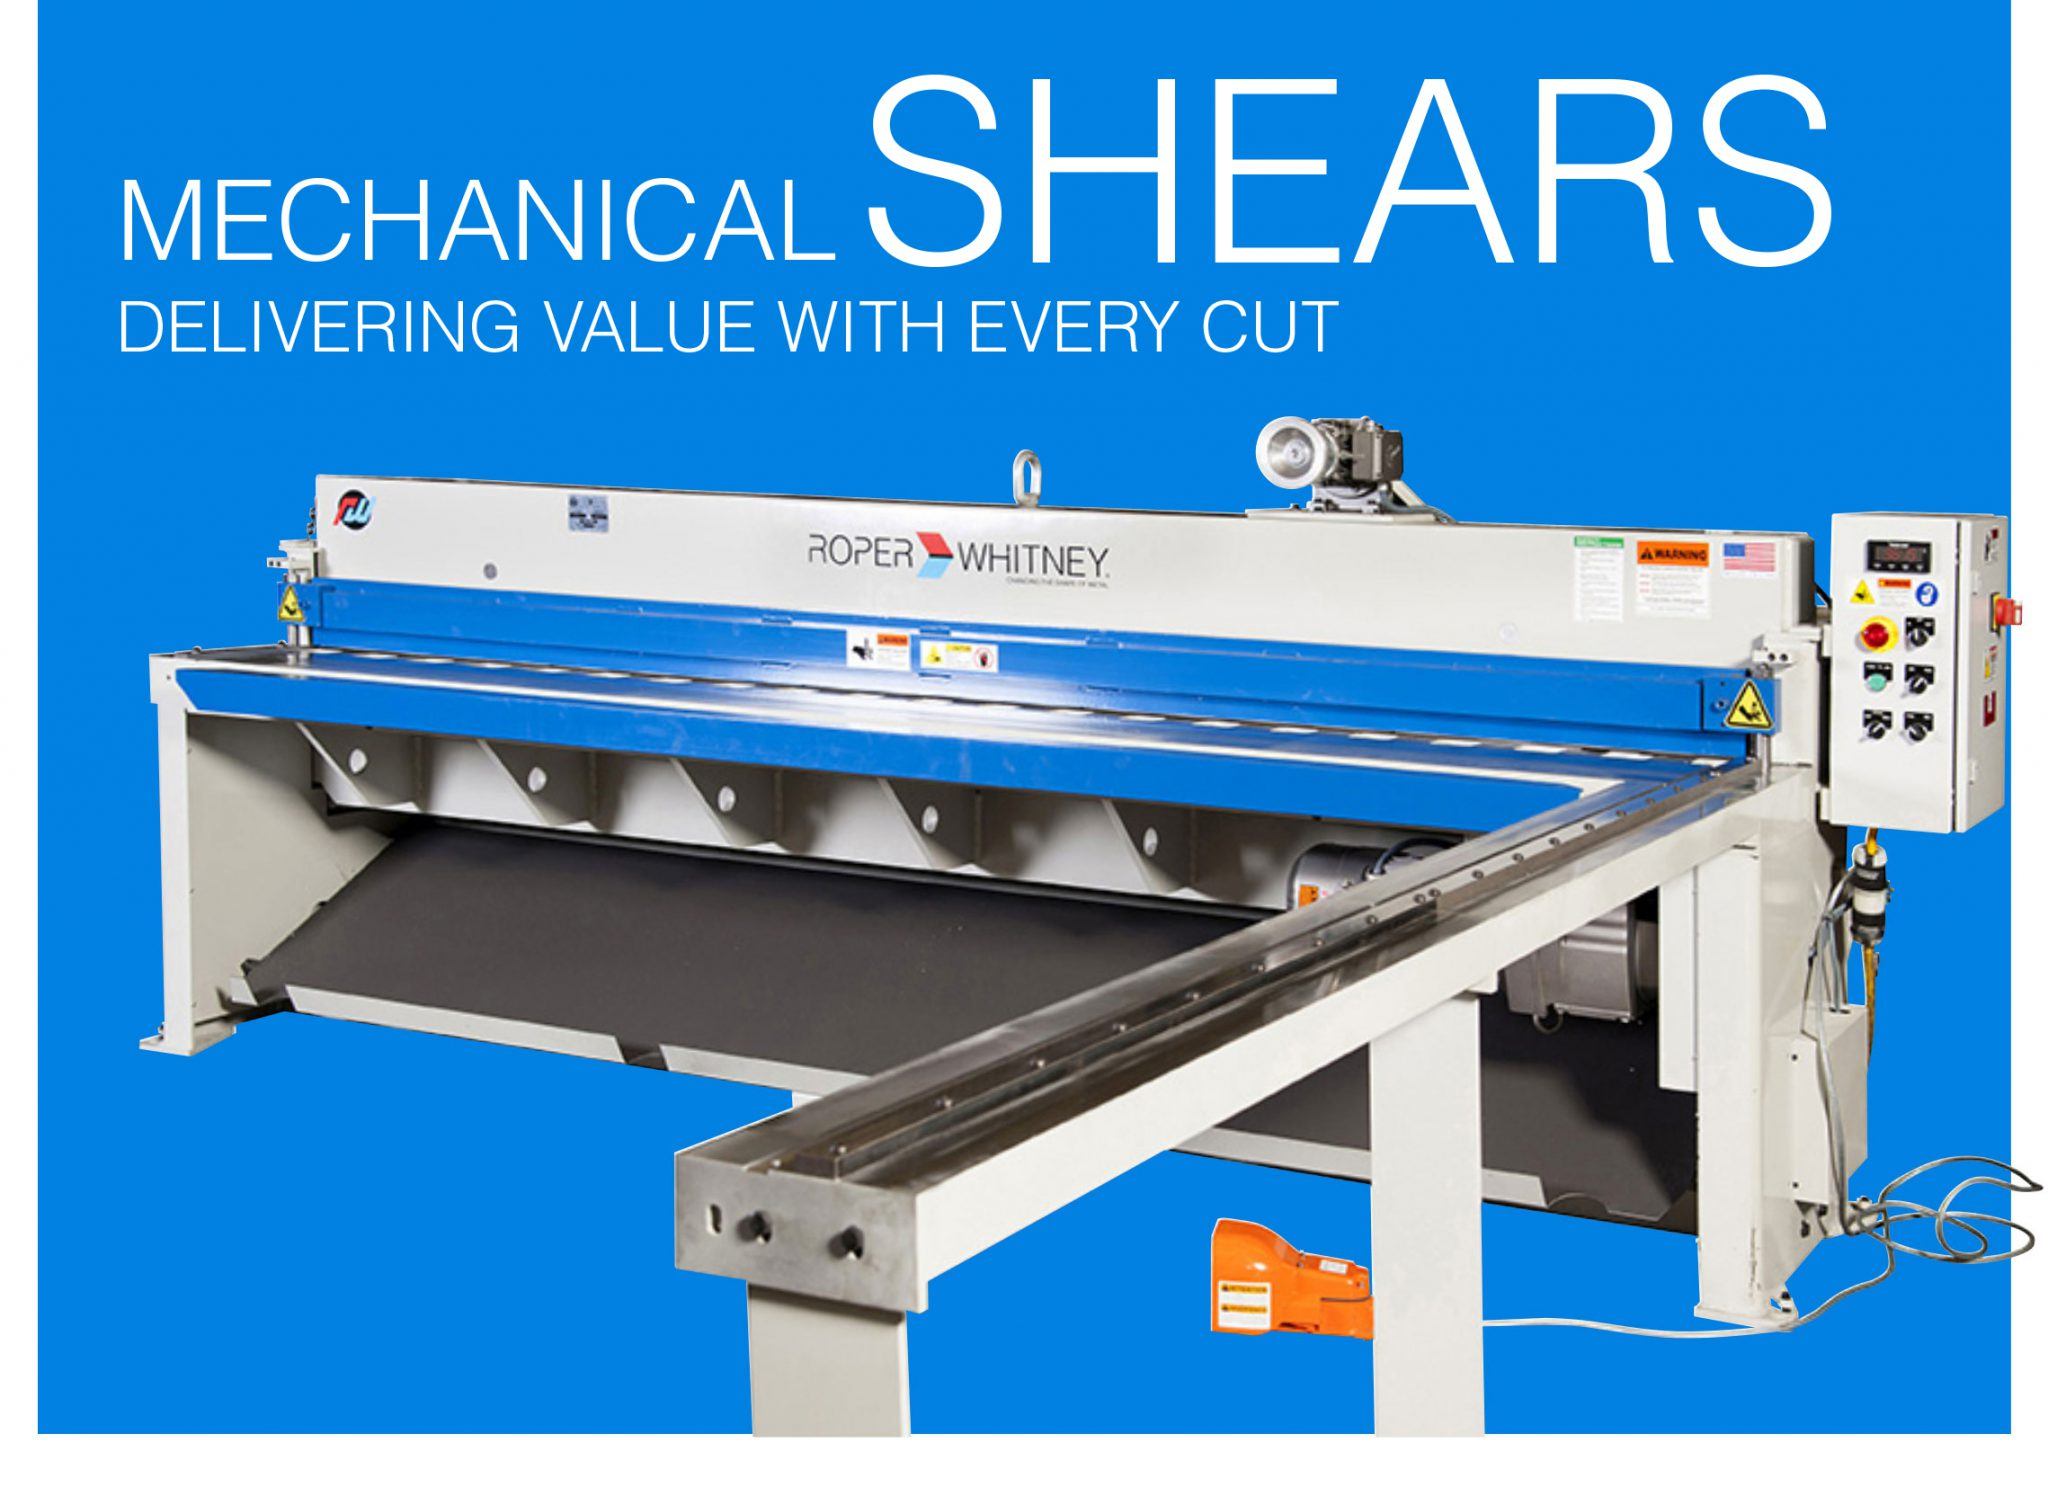 Mechanical Sheet Metal Shears by Roper Whitney